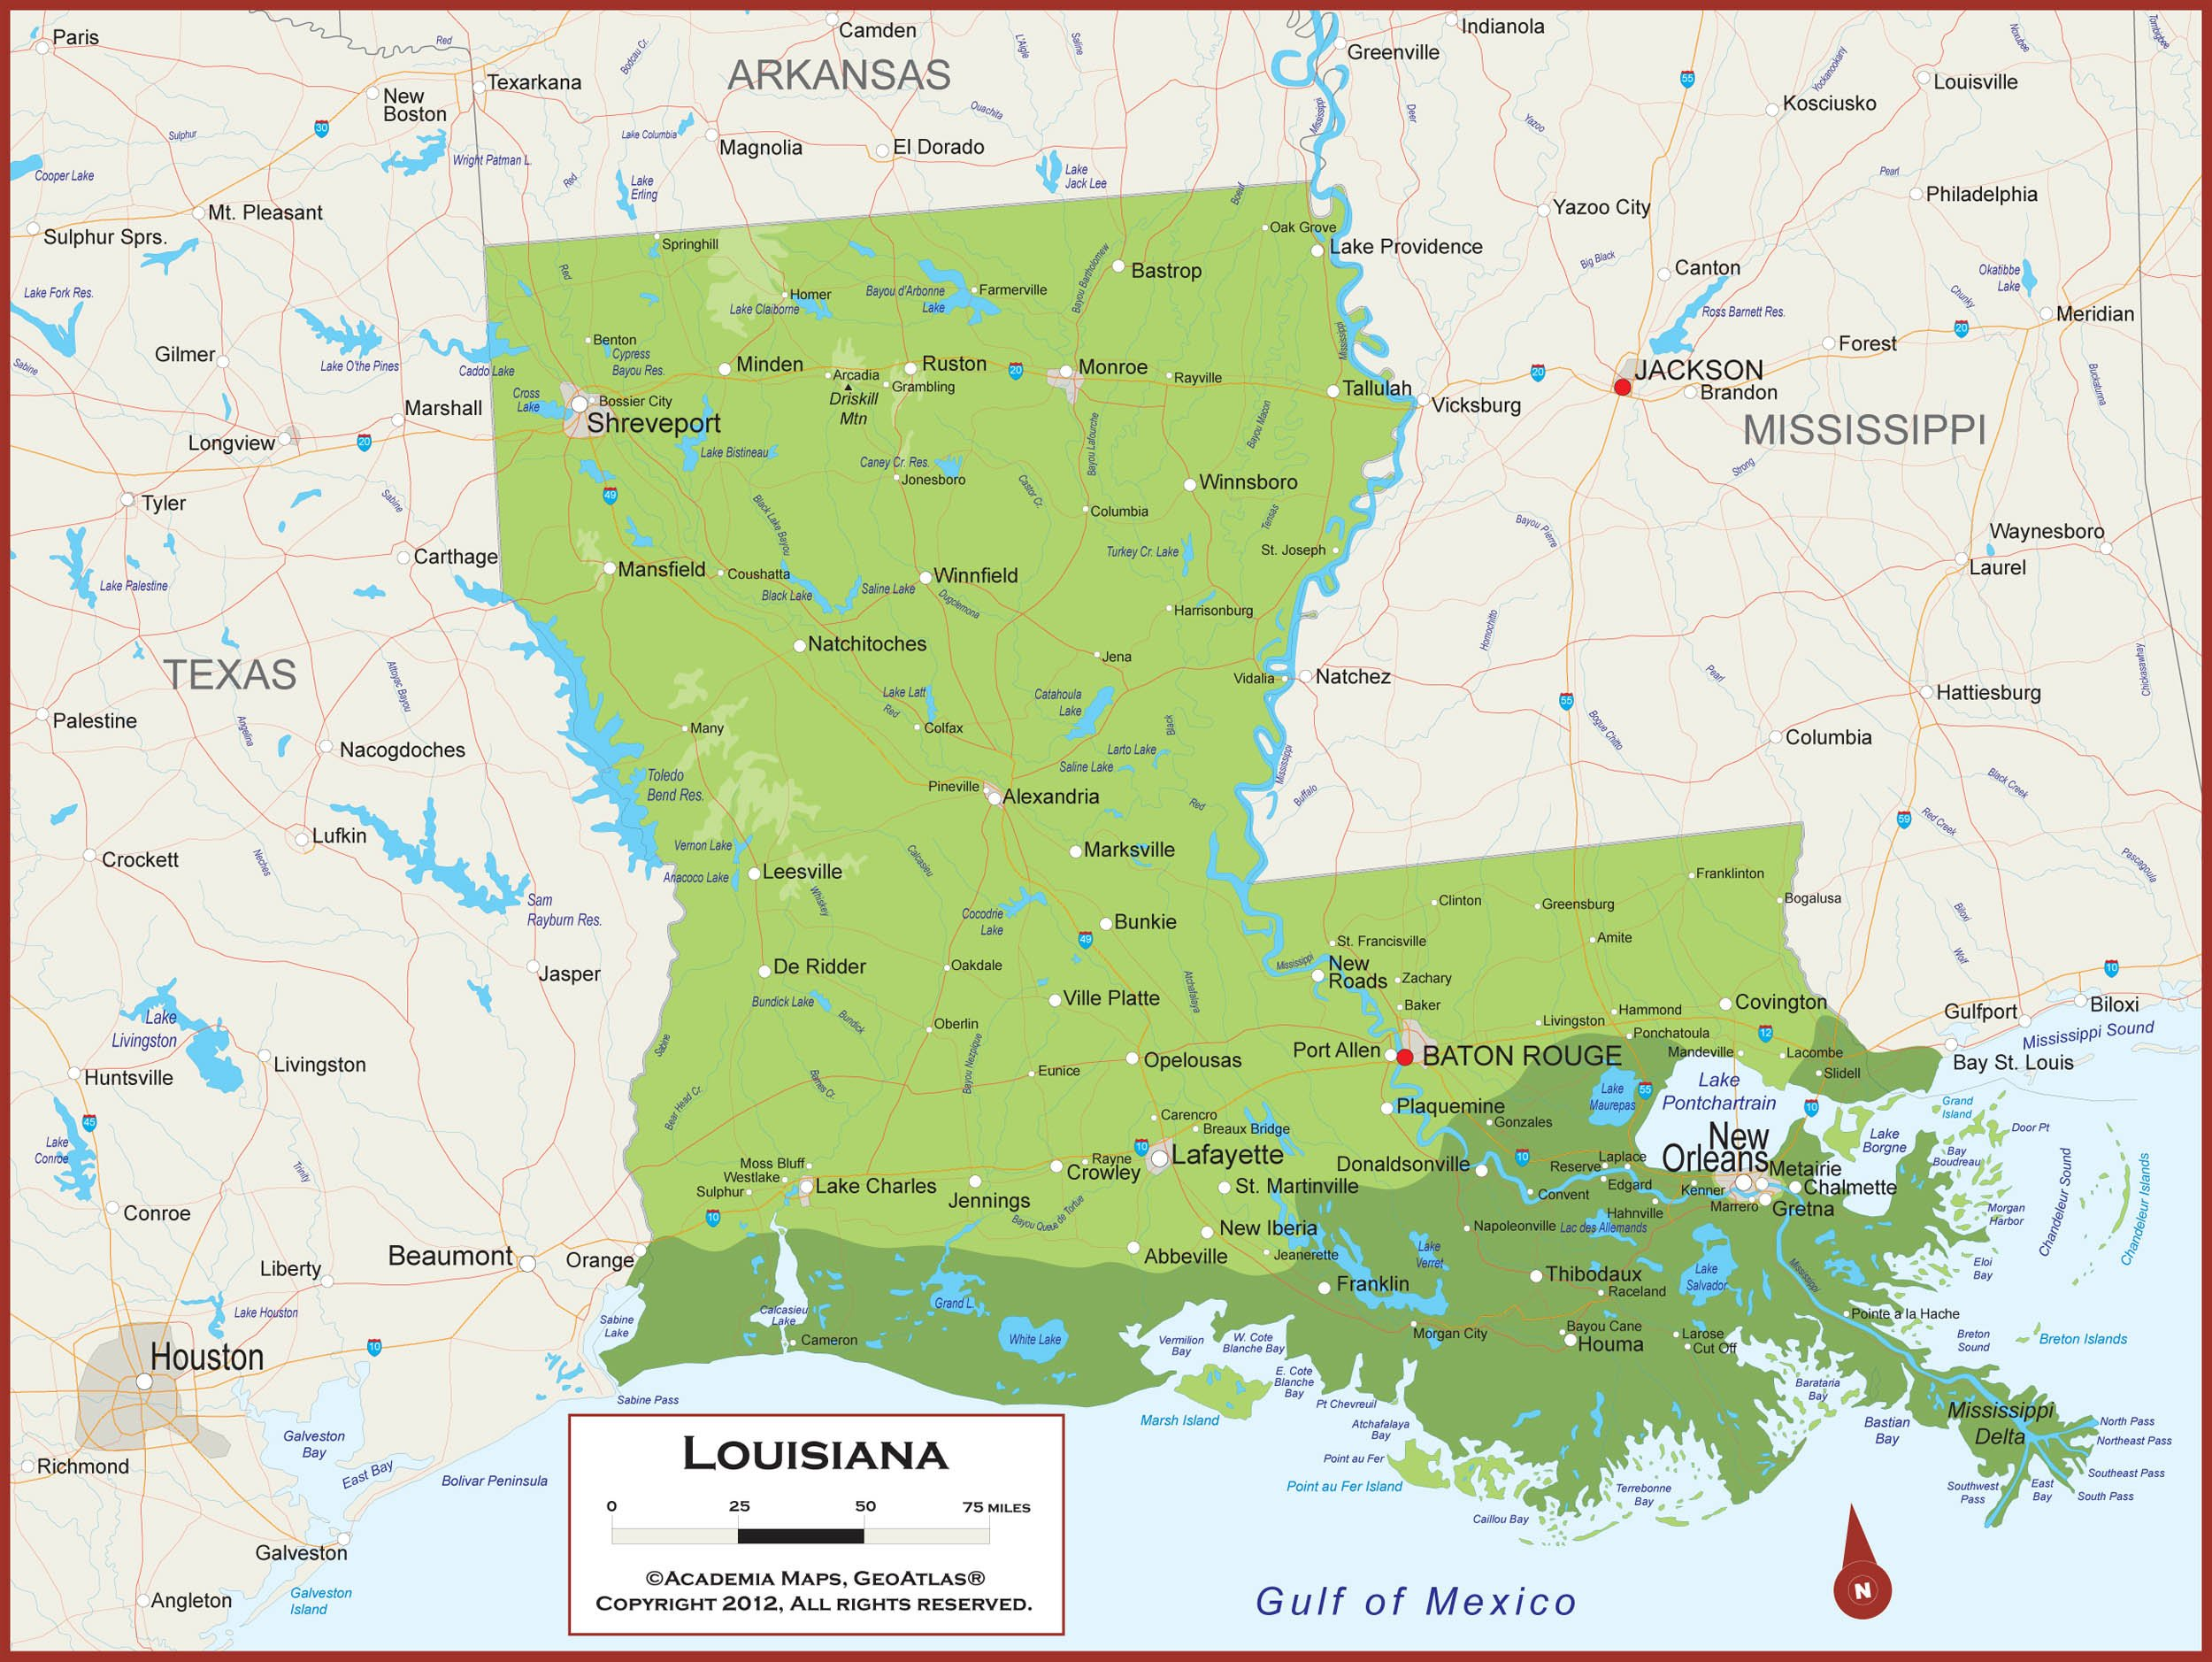 60 x 45 Giant Louisiana State Wall Map Poster with Topography - Classroom Style Map with Durable Lamination - Safe for Use with Wet/Dry Erase Marker - Brass Eyelets for Enhanced Durability